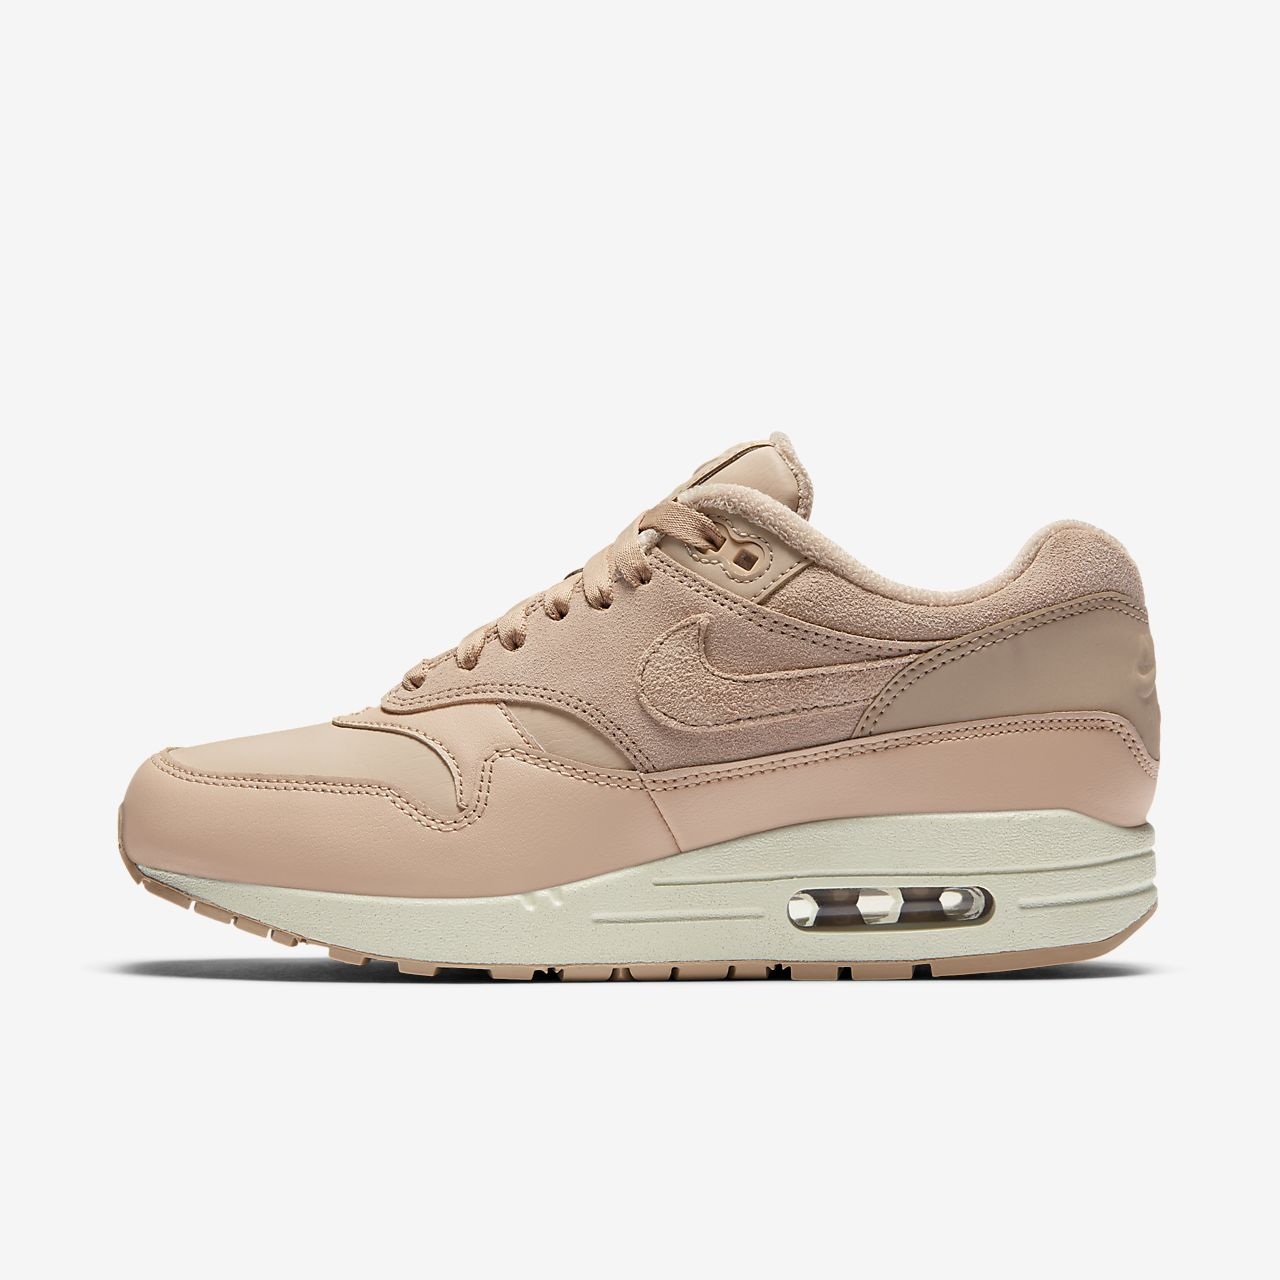 lowest price 87b83 f46f1 1 408 Dh. 1 759 Dh. Low Resolution Chaussure Nike Air Max 1 Premium  Winterized pour Femme Chaussure Nike Air Max 1 Premium Winterized pour Femme